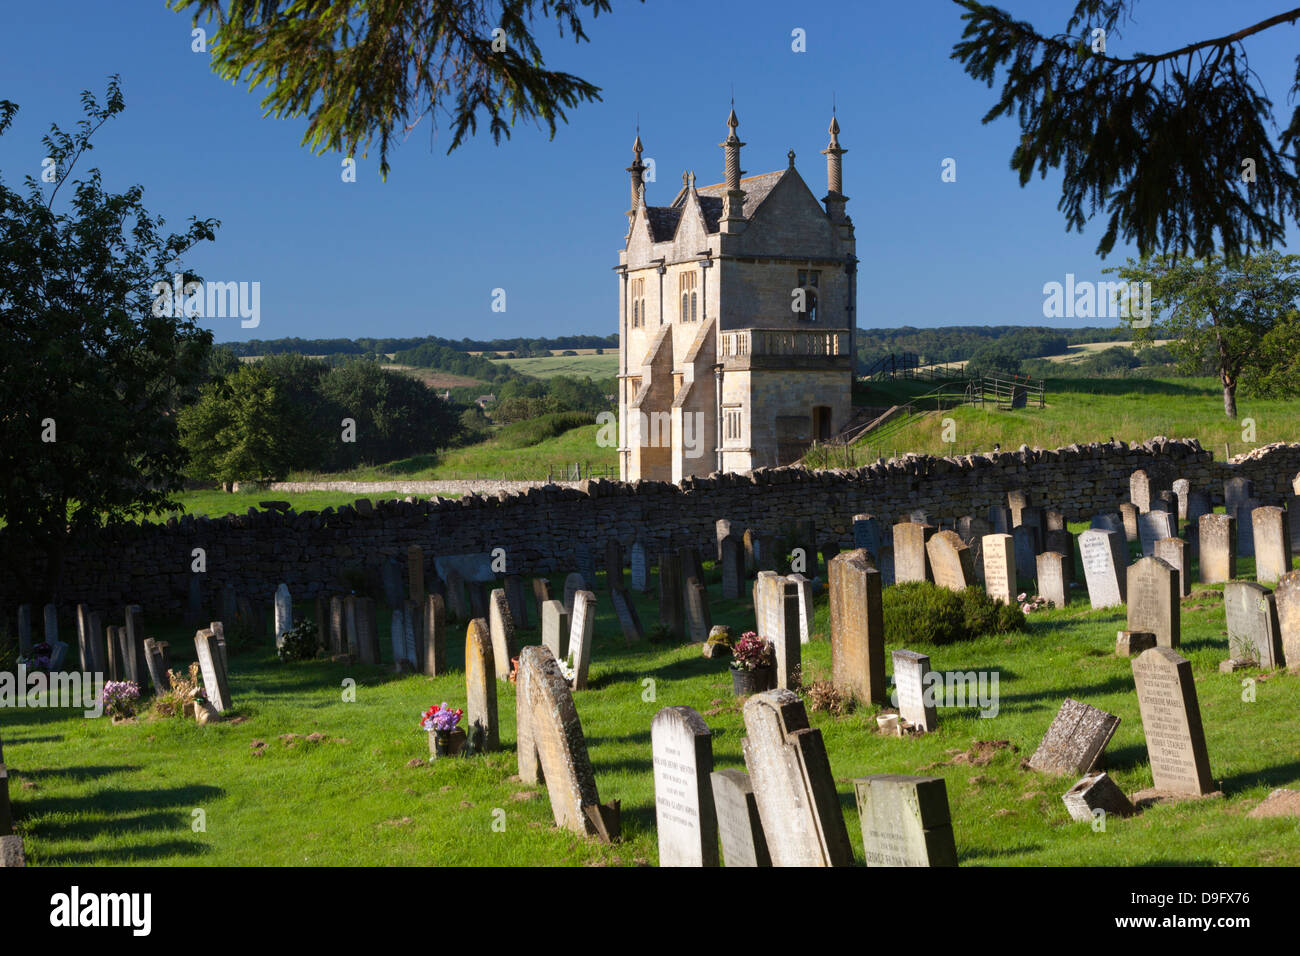 Churchyard of St. James and Jacobean lodge, Chipping Campden, Gloucestershire, Cotswolds, England, UK - Stock Image